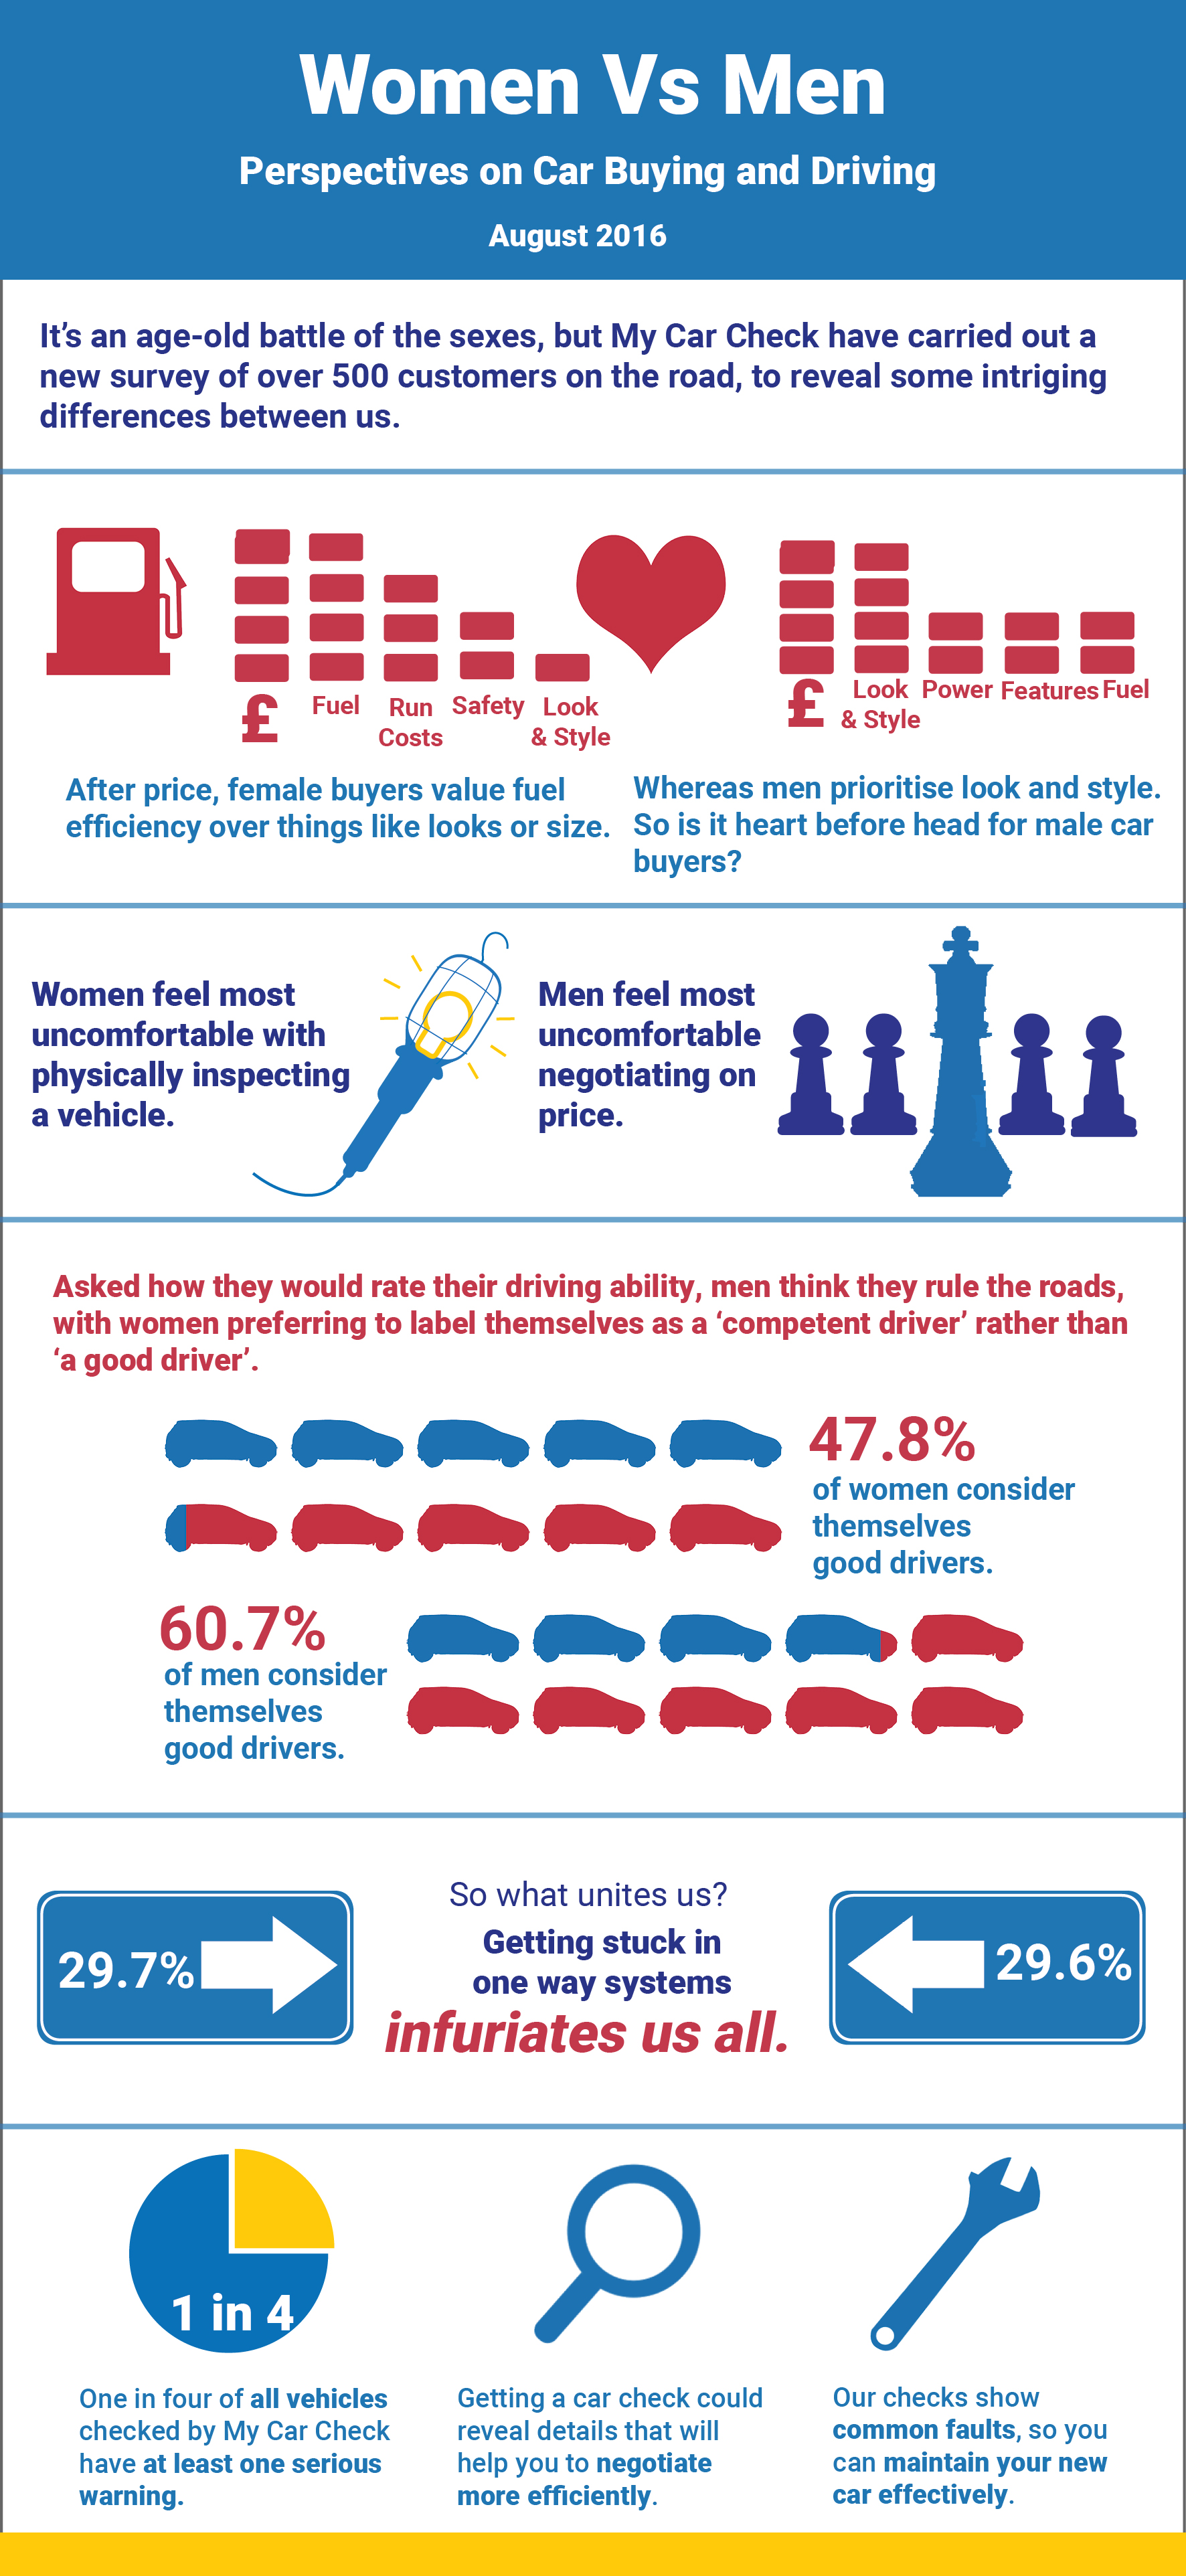 Survey Reveals Male and Female Perspectives on Car Buying and Driving